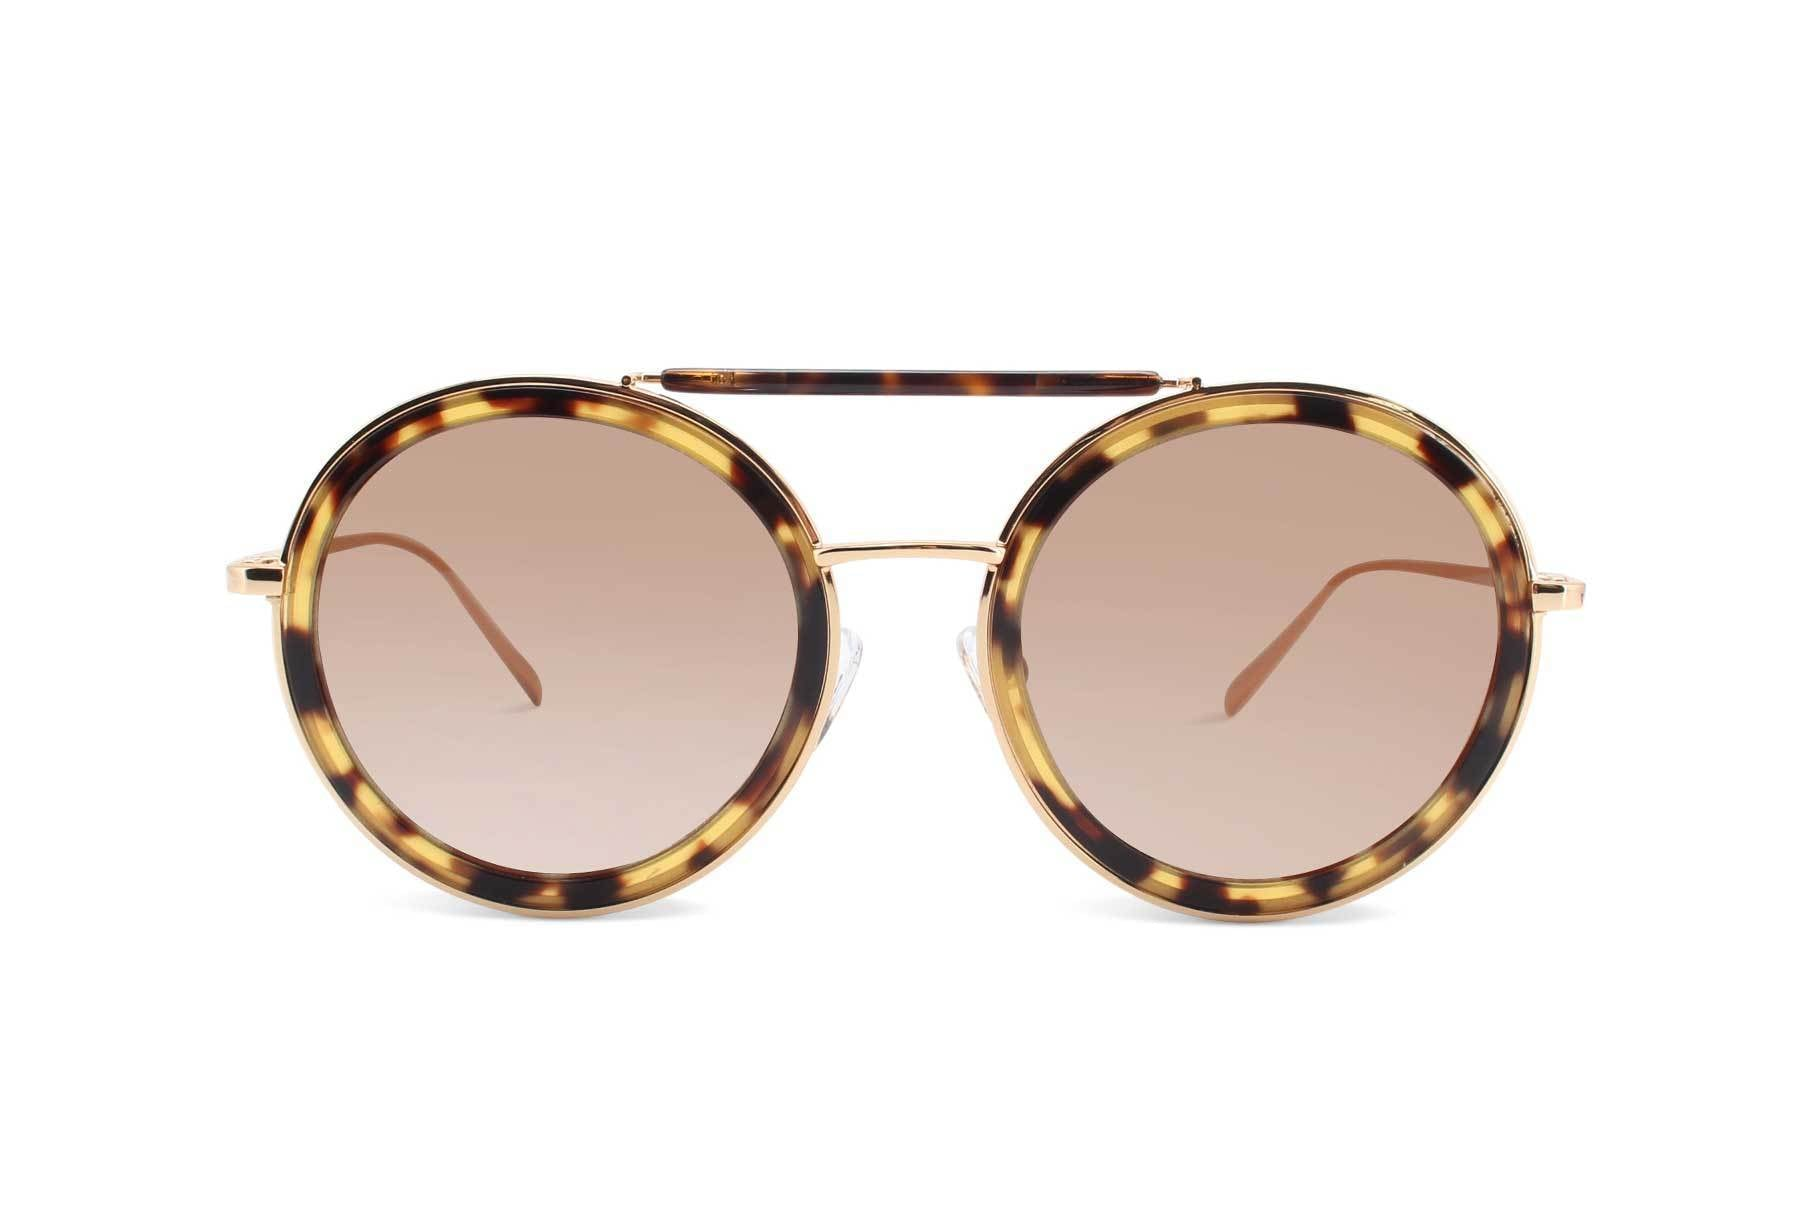 CASTOR BUTTERSCOTCH - Designer Sunglasses - EstablishedStore.com